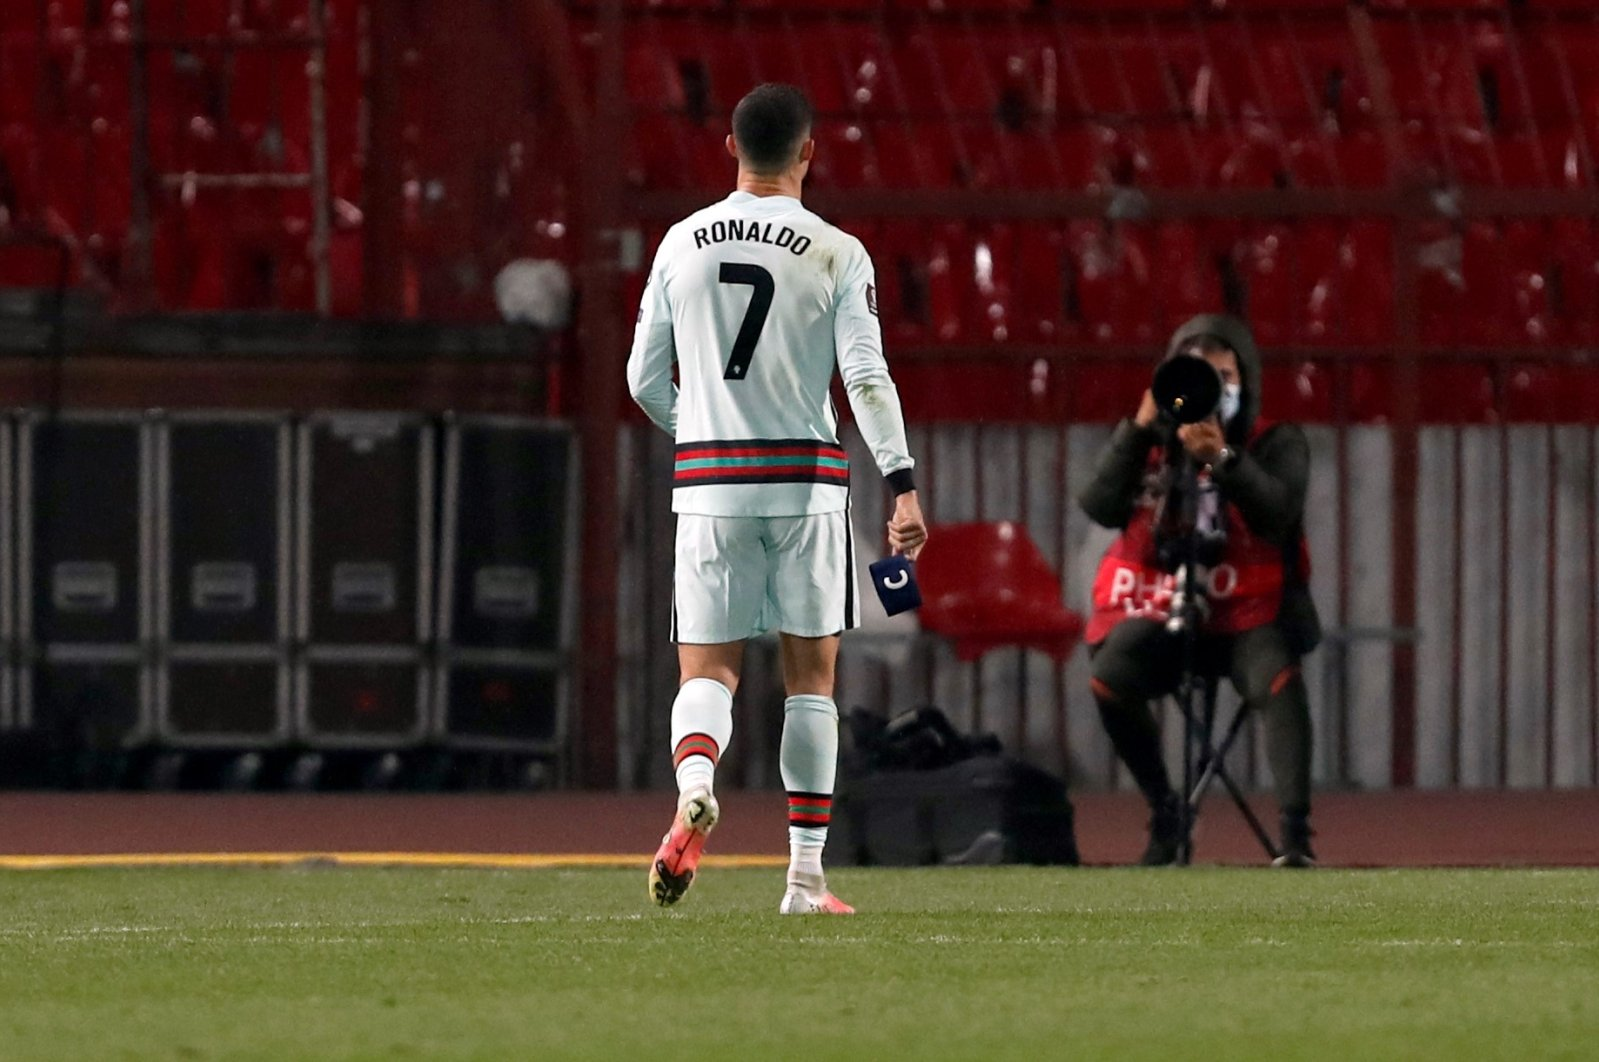 Portugal's Cristiano Ronaldo holds the captain's armband (R) during the World Cup 2022 Group A qualifying match against Serbia at the Rajko Mitic stadium in Belgrade, Serbia, March 27, 2021. (AP Photo)